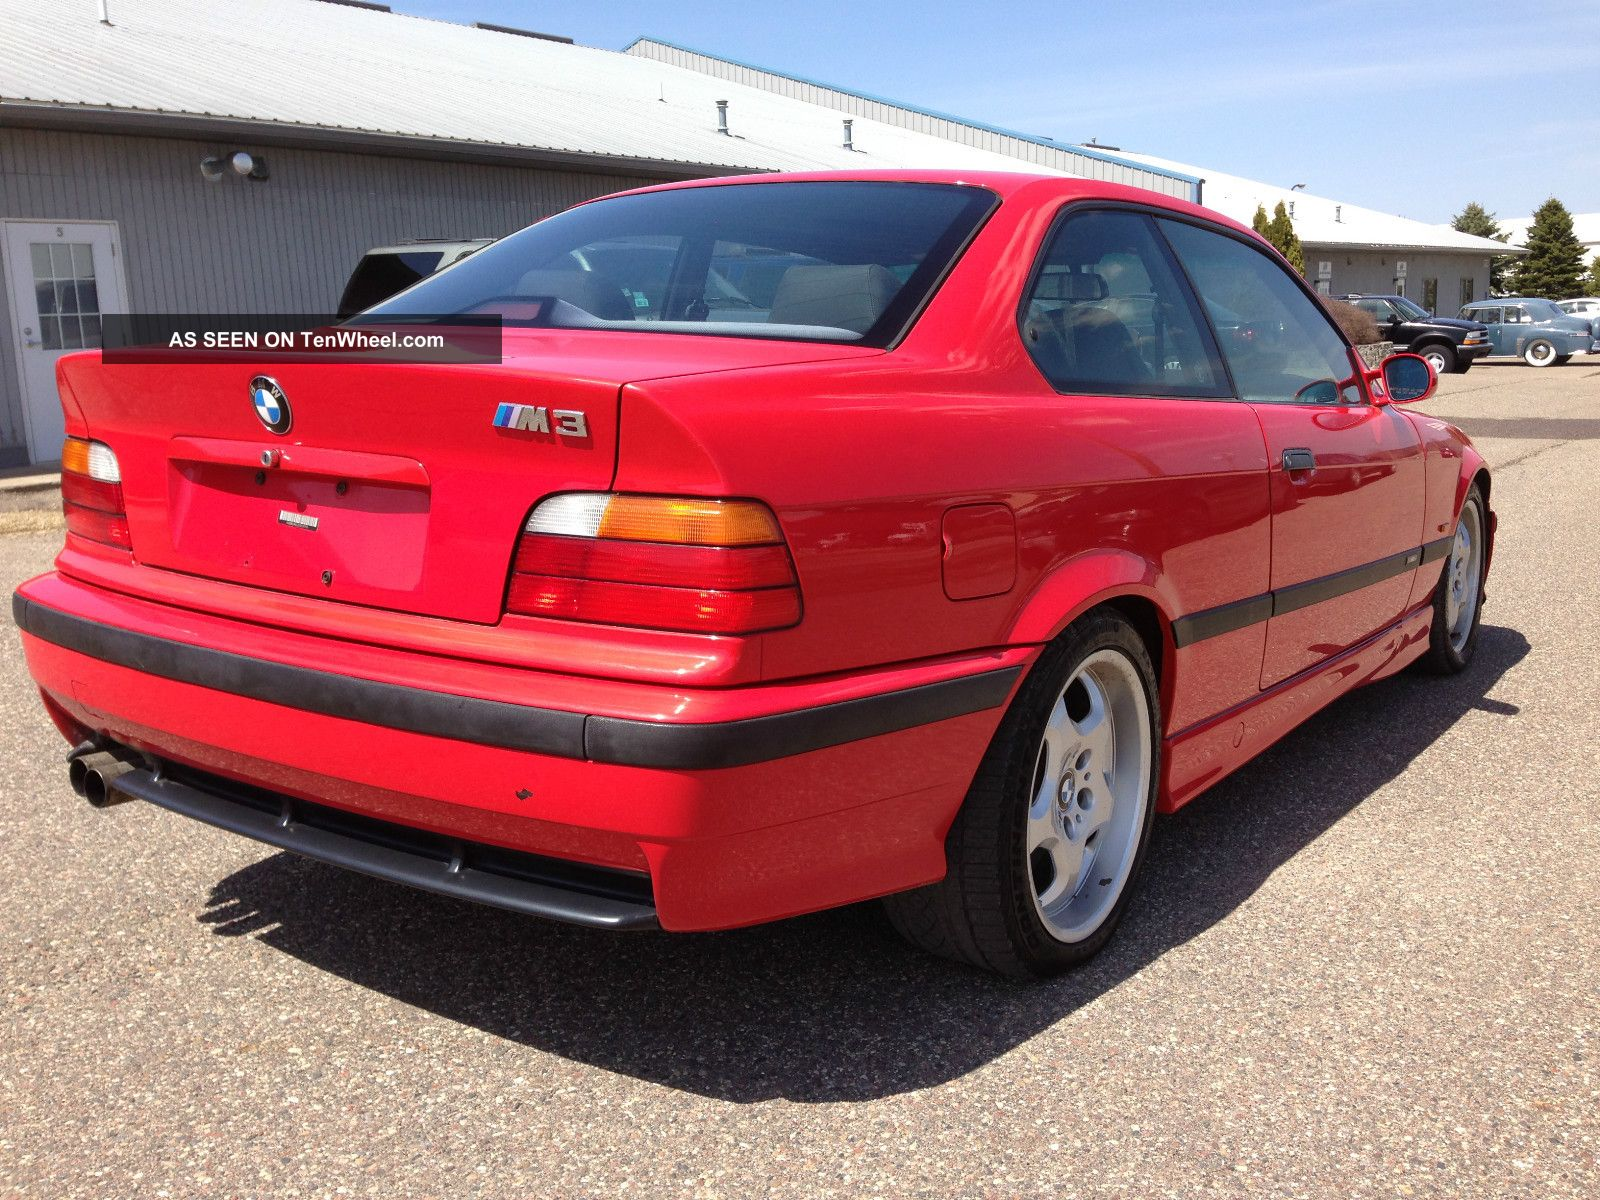 Download Acura 3.2 cl type s owners manual